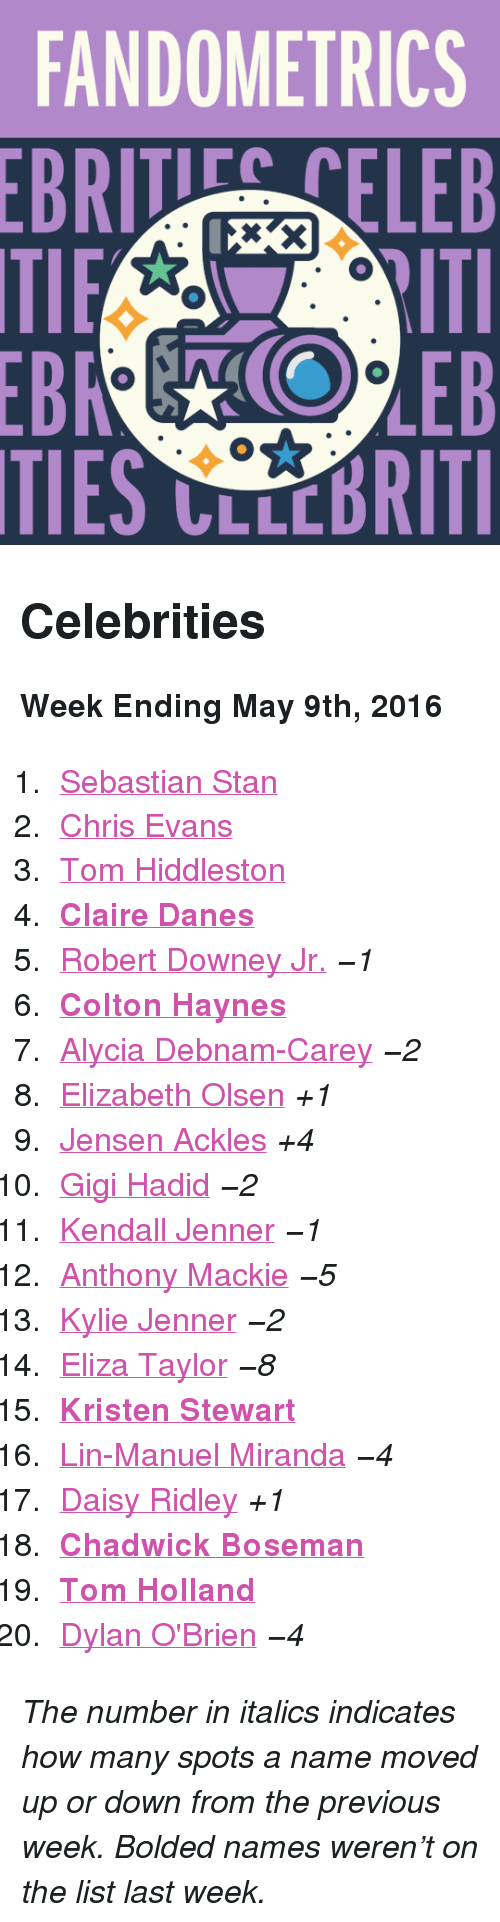 """Kristen Stewart: FANDOMETRICS  BRTELEB  TIES CLLCBRITI <h2>Celebrities</h2><p><b>Week Ending May 9th, 2016</b></p><ol><li><a href=""""http://www.tumblr.com/search/sebastian%20stan"""">Sebastian Stan</a></li>  <li><a href=""""http://www.tumblr.com/search/chris%20evans"""">Chris Evans</a></li>  <li><a href=""""http://www.tumblr.com/search/tom%20hiddleston"""">Tom Hiddleston</a></li>  <li><a href=""""http://www.tumblr.com/search/claire%20danes""""><b>Claire Danes</b></a></li>  <li><a href=""""http://www.tumblr.com/search/robert%20downey%20jr"""">Robert Downey Jr.</a><i><i>−1</i></i></li>  <li><a href=""""http://www.tumblr.com/search/colton%20haynes""""><b>Colton Haynes</b></a></li>  <li><a href=""""http://www.tumblr.com/search/alycia%20debnam%20carey"""">Alycia Debnam-Carey</a><i><i>−2</i></i></li>  <li><a href=""""http://www.tumblr.com/search/elizabeth%20olsen"""">Elizabeth Olsen</a><i>+1</i></li>  <li><a href=""""http://www.tumblr.com/search/jensen%20ackles"""">Jensen Ackles</a><i>+4</i></li>  <li><a href=""""http://www.tumblr.com/search/gigi%20hadid"""">Gigi Hadid</a><i><i>−2</i></i></li>  <li><a href=""""http://www.tumblr.com/search/kendall%20jenner"""">Kendall Jenner</a><i><i>−1</i></i></li>  <li><a href=""""http://www.tumblr.com/search/anthony%20mackie"""">Anthony Mackie</a><i><i>−5</i></i></li>  <li><a href=""""http://www.tumblr.com/search/kylie%20jenner"""">Kylie Jenner</a><i><i>−2</i></i></li>  <li><a href=""""http://www.tumblr.com/search/eliza%20taylor"""">Eliza Taylor</a><i><i>−8</i></i></li>  <li><a href=""""http://www.tumblr.com/search/kristen%20stewart""""><b>Kristen Stewart</b></a></li>  <li><a href=""""http://www.tumblr.com/search/lin%20manuel%20miranda"""">Lin-Manuel Miranda</a><i><i>−4</i></i></li>  <li><a href=""""http://www.tumblr.com/search/daisy%20ridley"""">Daisy Ridley</a><i>+1</i></li>  <li><a href=""""http://www.tumblr.com/search/chadwick%20boseman""""><b>Chadwick Boseman</b></a></li>  <li><a href=""""http://www.tumblr.com/search/tom%20holland""""><b>Tom Holland</b></a></li>  <li><a href=""""http://www.tumblr.com/search/dylan%20o'brien"""">Dylan O'Brien</a><i><"""